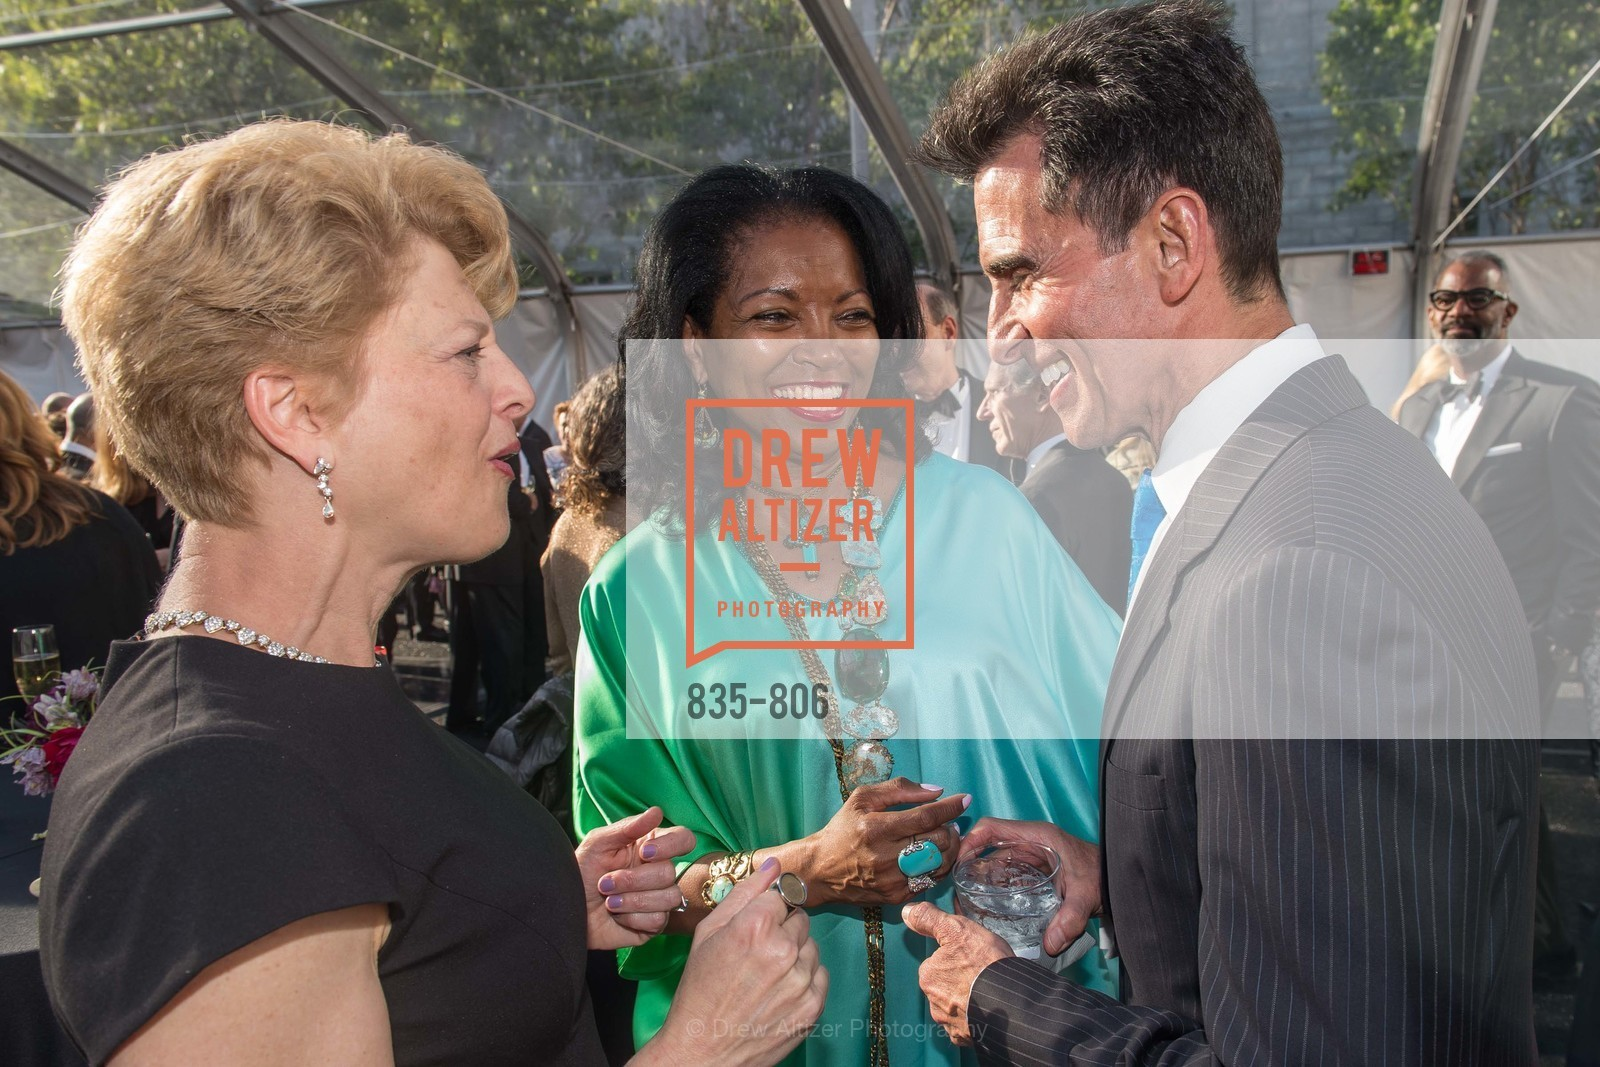 Carey Perloff, Denise Bradley Tyson, Mark Leno, A.C.T. Gala Come Get Stranded, US, April 26th, 2015,Drew Altizer, Drew Altizer Photography, full-service event agency, private events, San Francisco photographer, photographer California